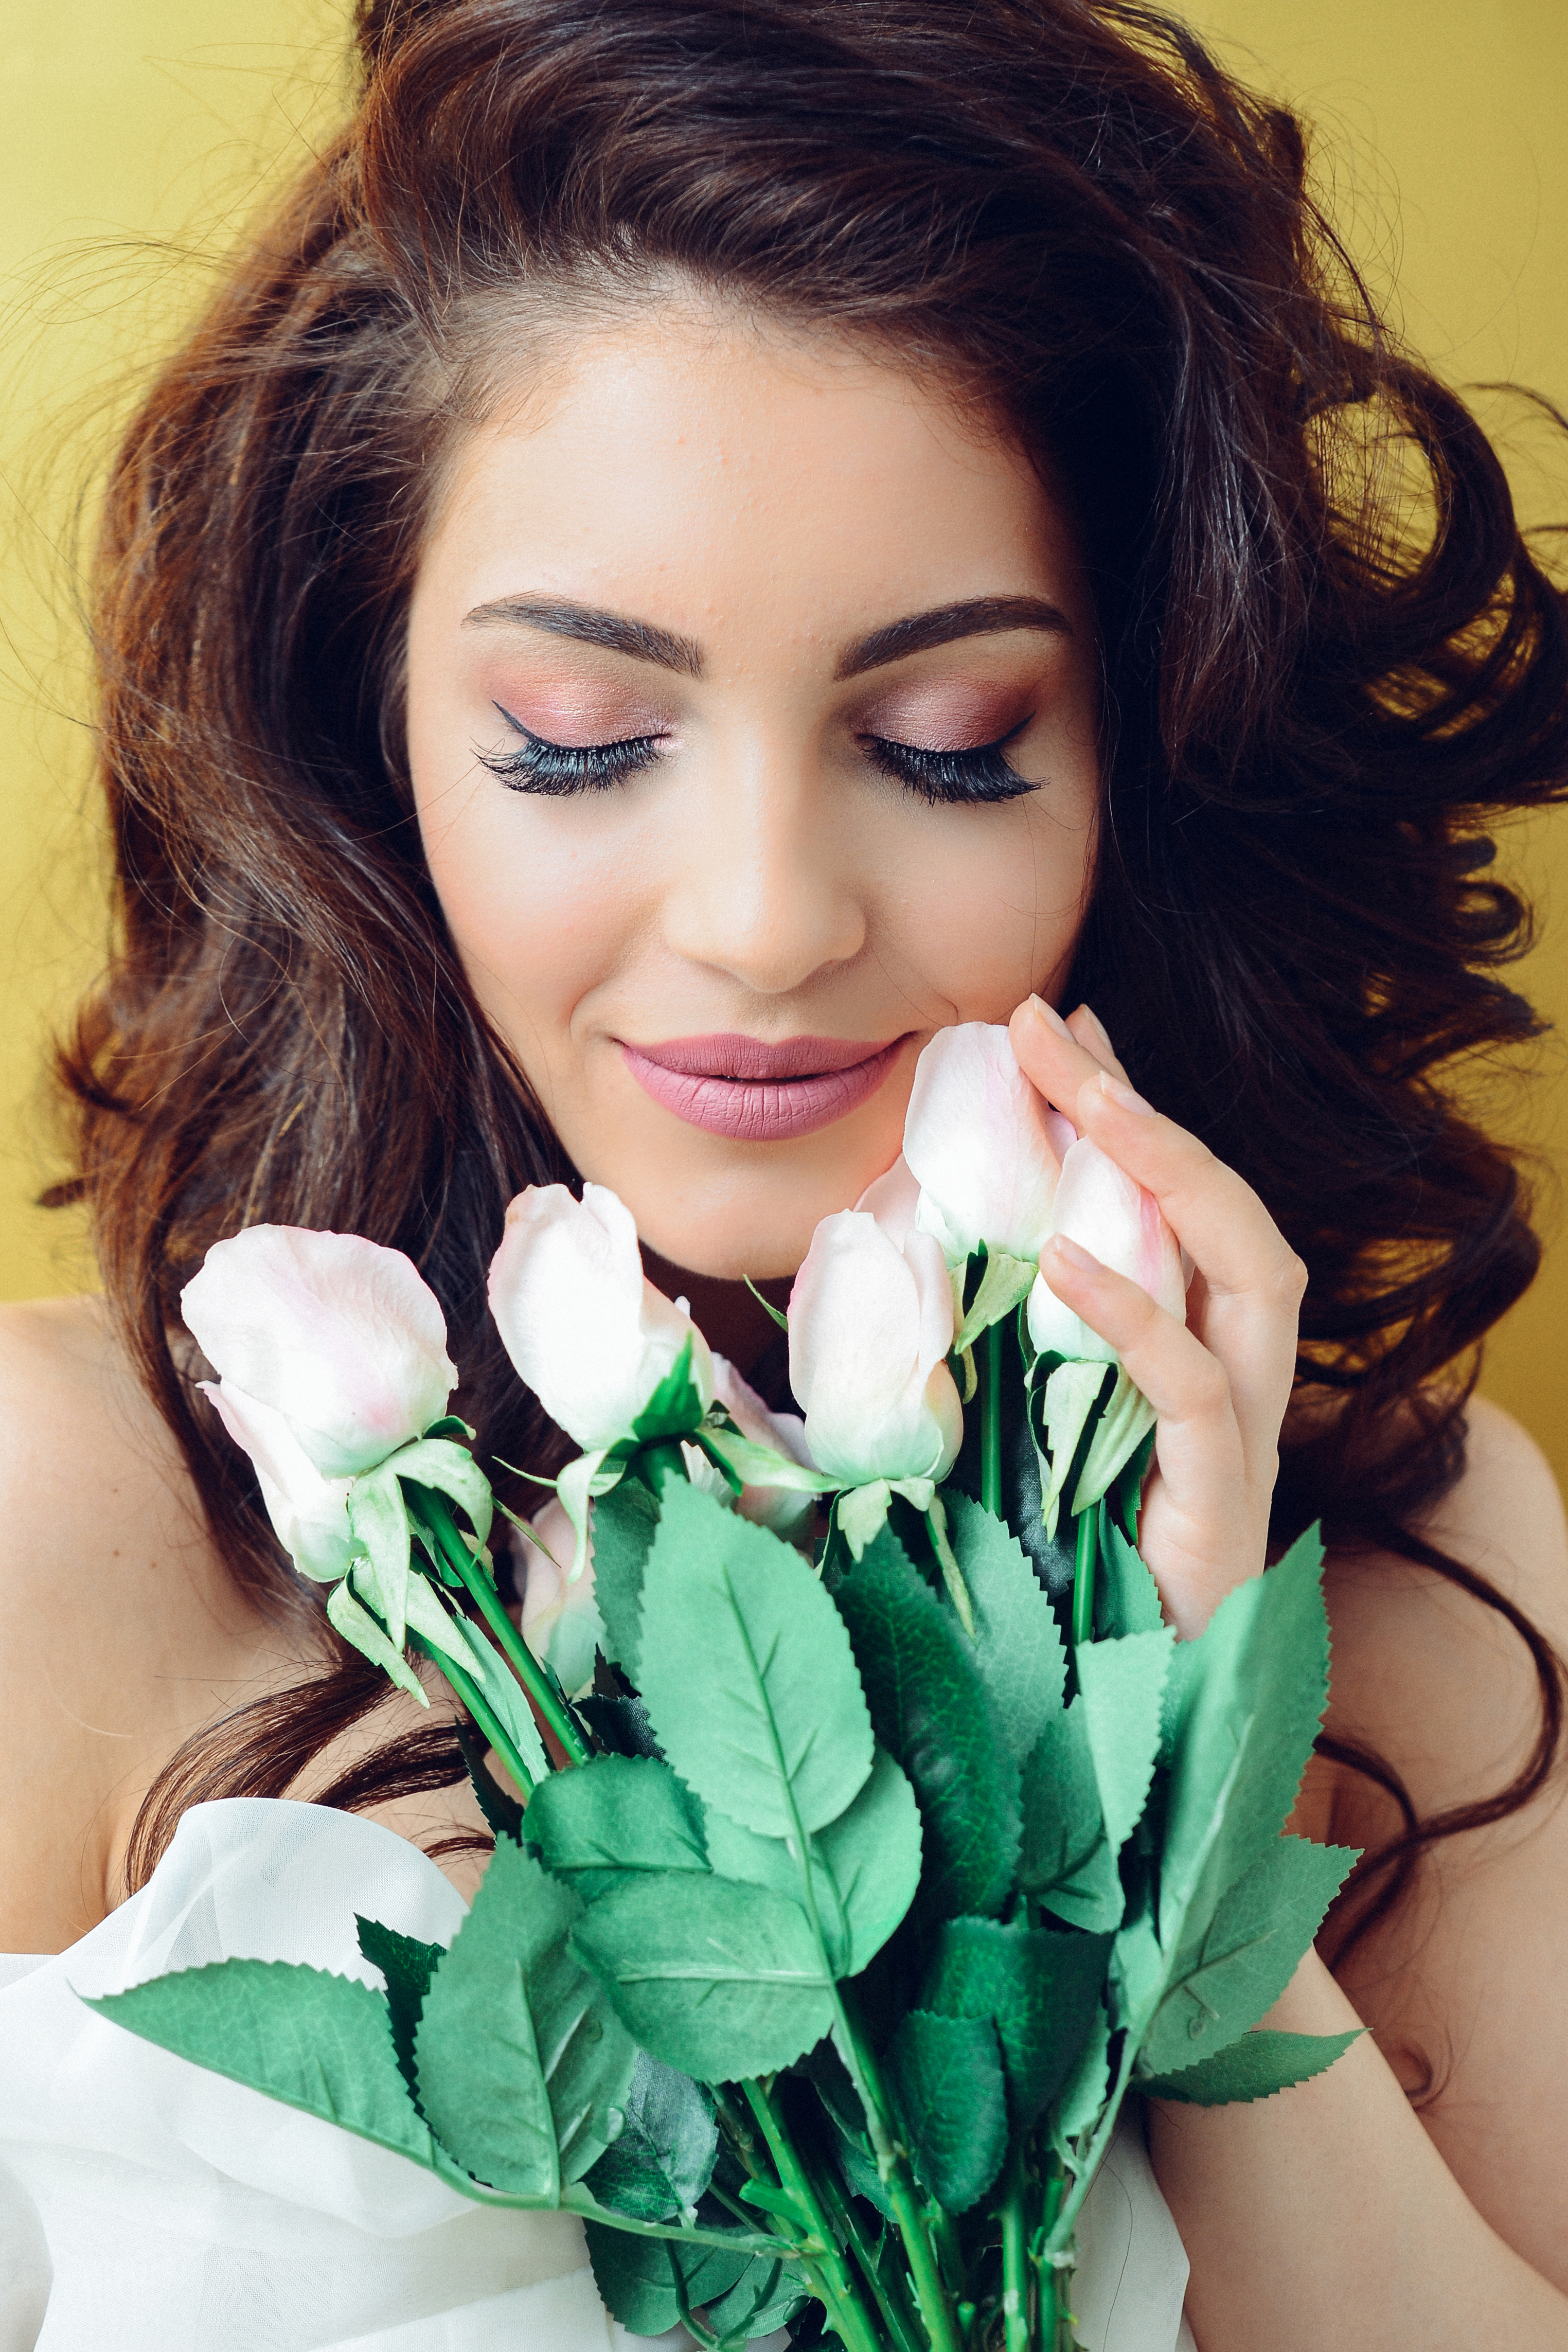 Most Effective Antiaging Skin Care